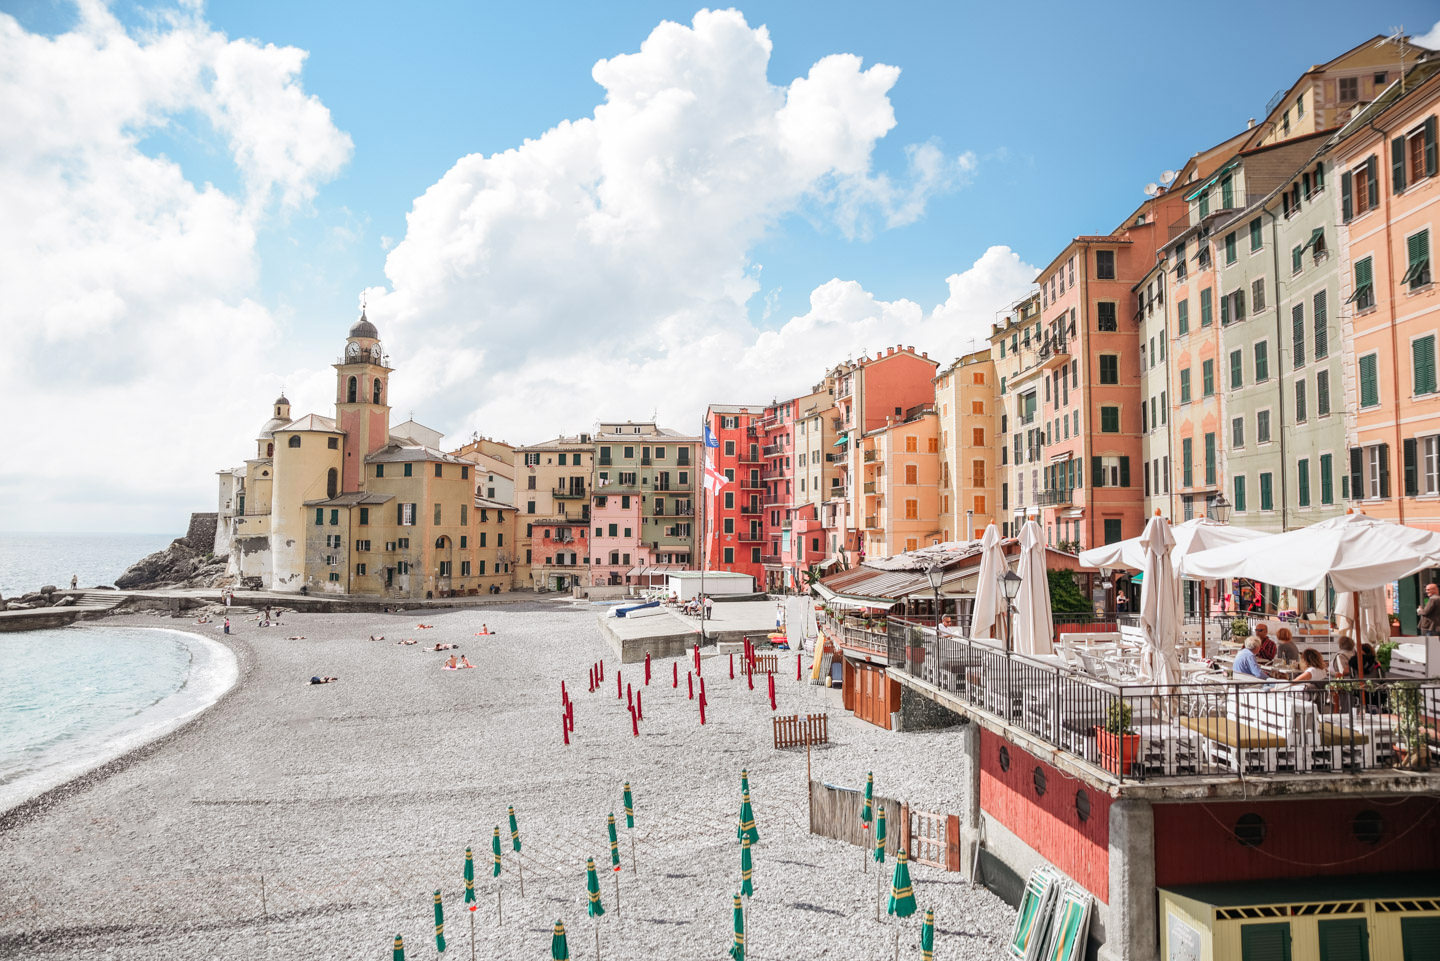 Blog-Mode-And-The-City-Lifestyle-Italie-Bocadasse-Camogli-Sestri-Levante-21